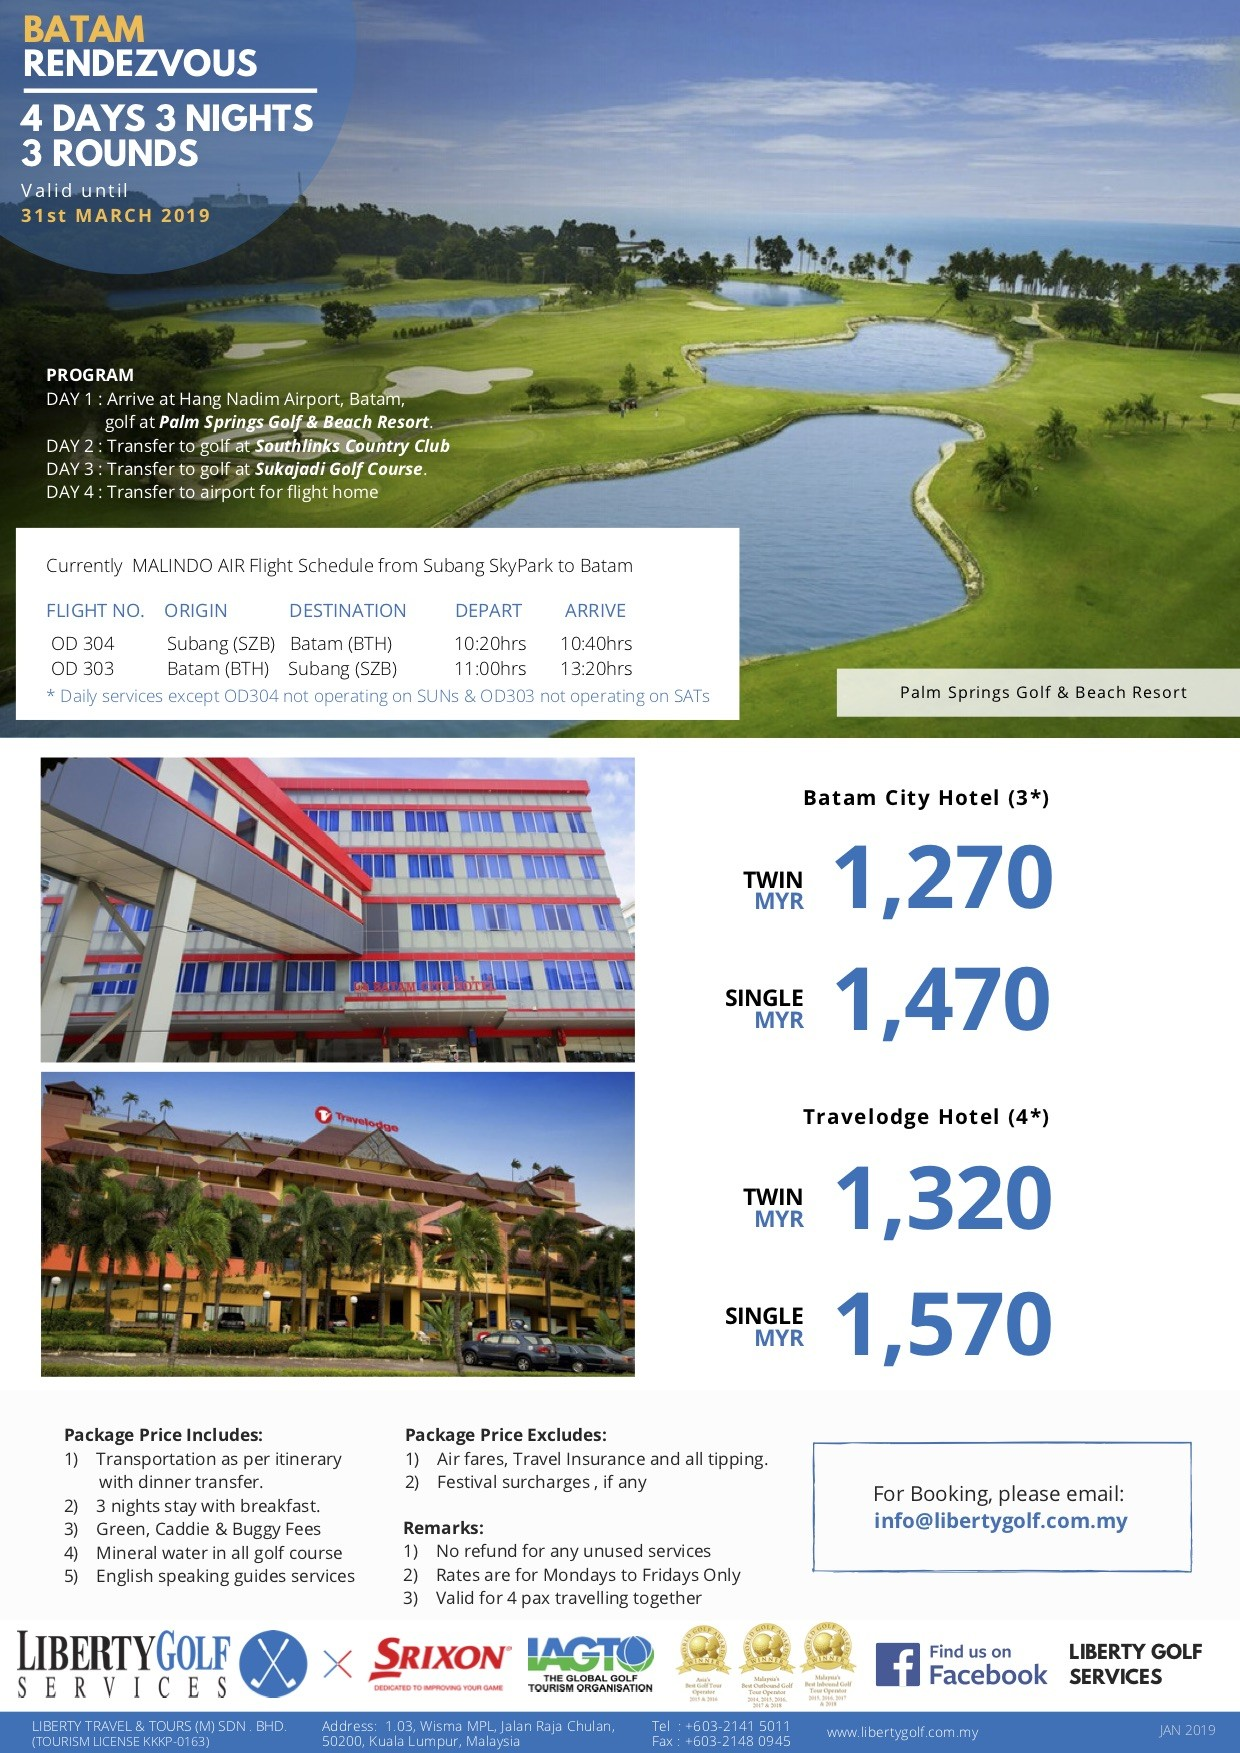 March 2019 Calendar Landscape Mejores Y Más Novedosos Liberty Golf Batam Golf Package 4d3n3r Of March 2019 Calendar Landscape Mejores Y Más Novedosos 2015 2016 2017 Calendar 4 Three Year Printable Pdf Calendars